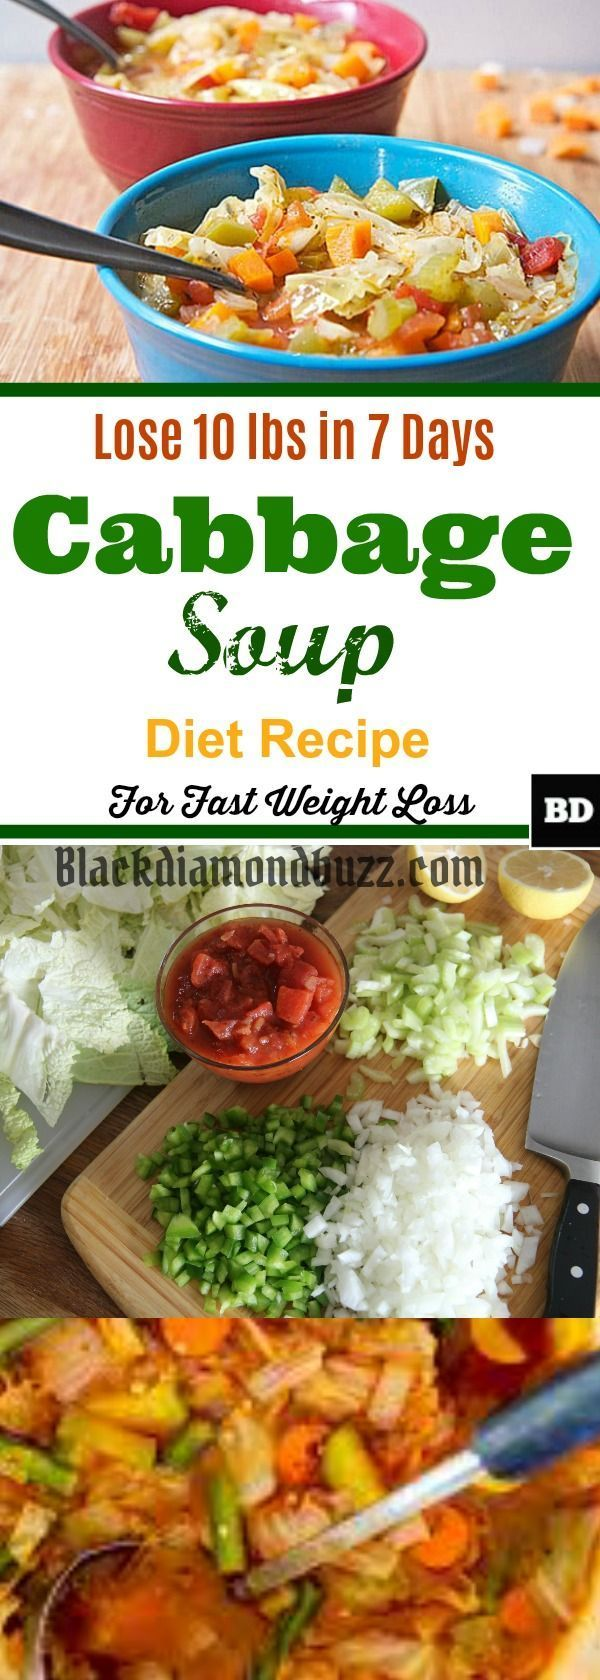 Best Cabbage Soup Diet Recipe for Weight Loss- Lose 10 Pounds In 7 Days.  Cabbage Soup Diet Recipe for Weight Loss  Preparing the cabbage soup diet is pretty easy and straightforward. It takes just about 15 minutes to serve. Follow the cabbage soup diet recipe for weight loss instructions below;   Ingredients for Cabbage Soup Diet   ½ head of Cabbage, chopped into small pieces  ½ Onion 2 sliced Mushrooms (optional)  1 diced celery of Celery  ½ sliced Carrot 2 small or 1 large Tomato  3 or 4